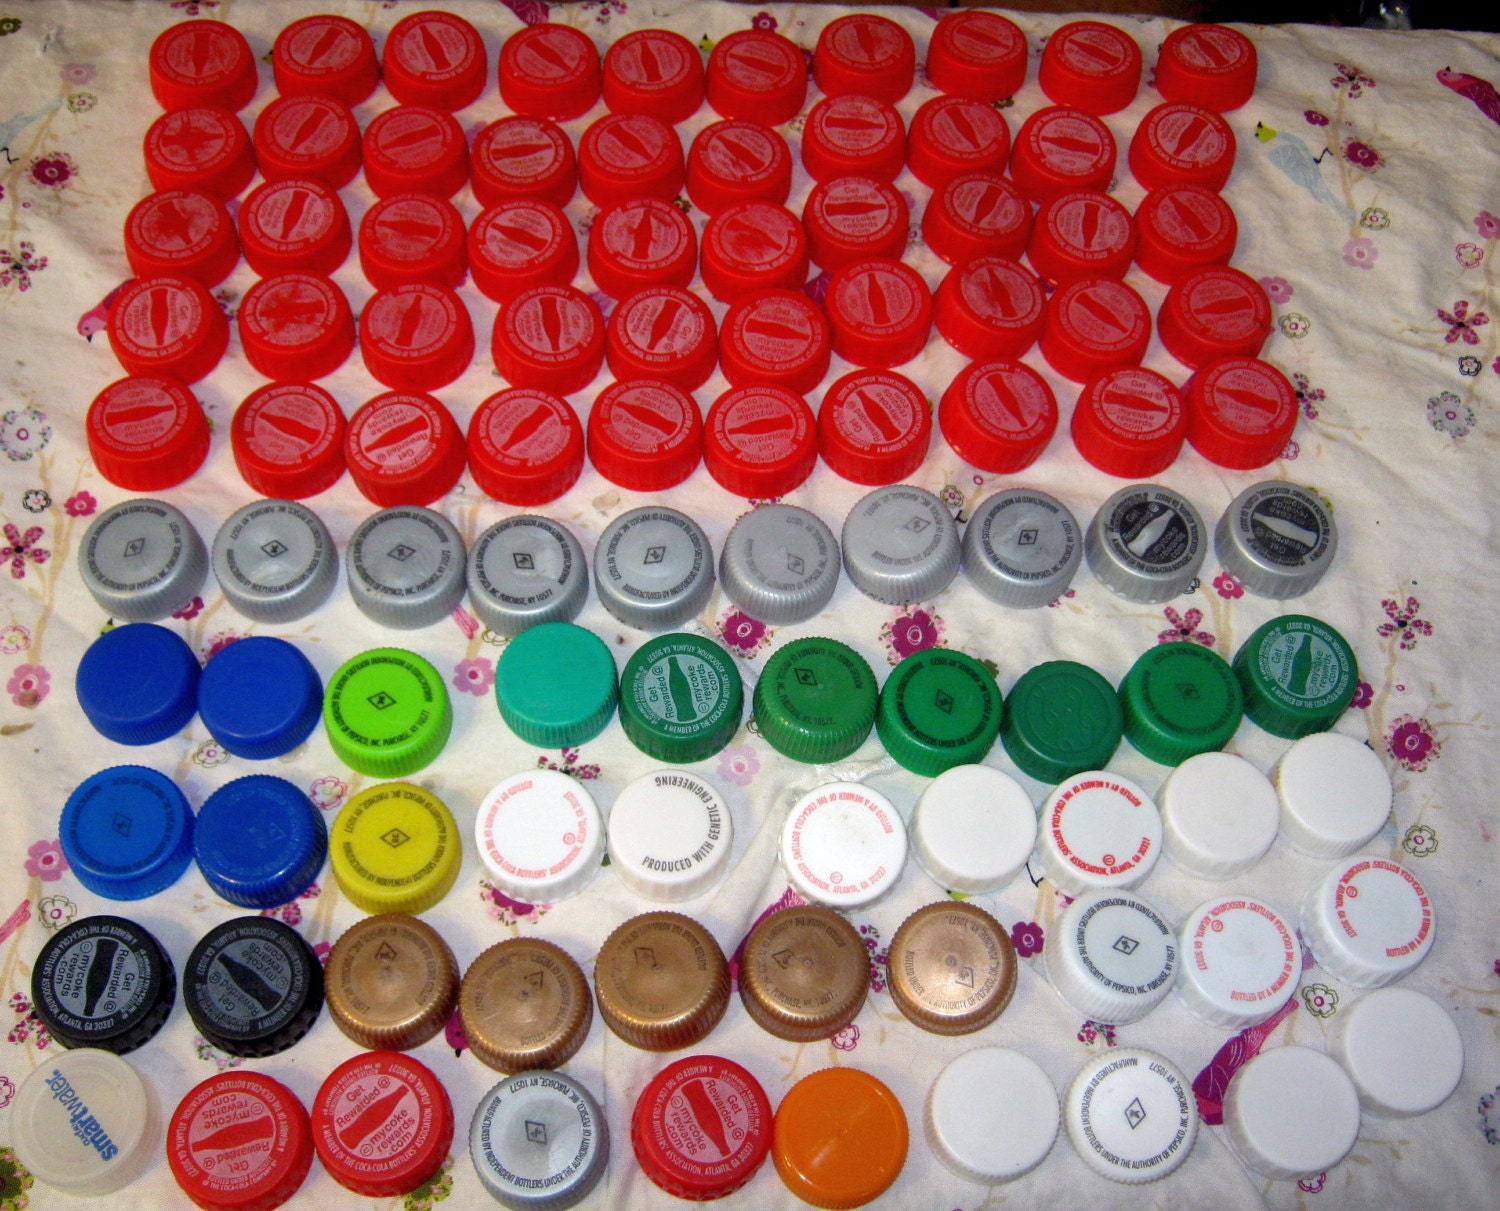 100 soda plastic bottle lids recycled crafts jewelry 2 for Plastic soda bottle crafts